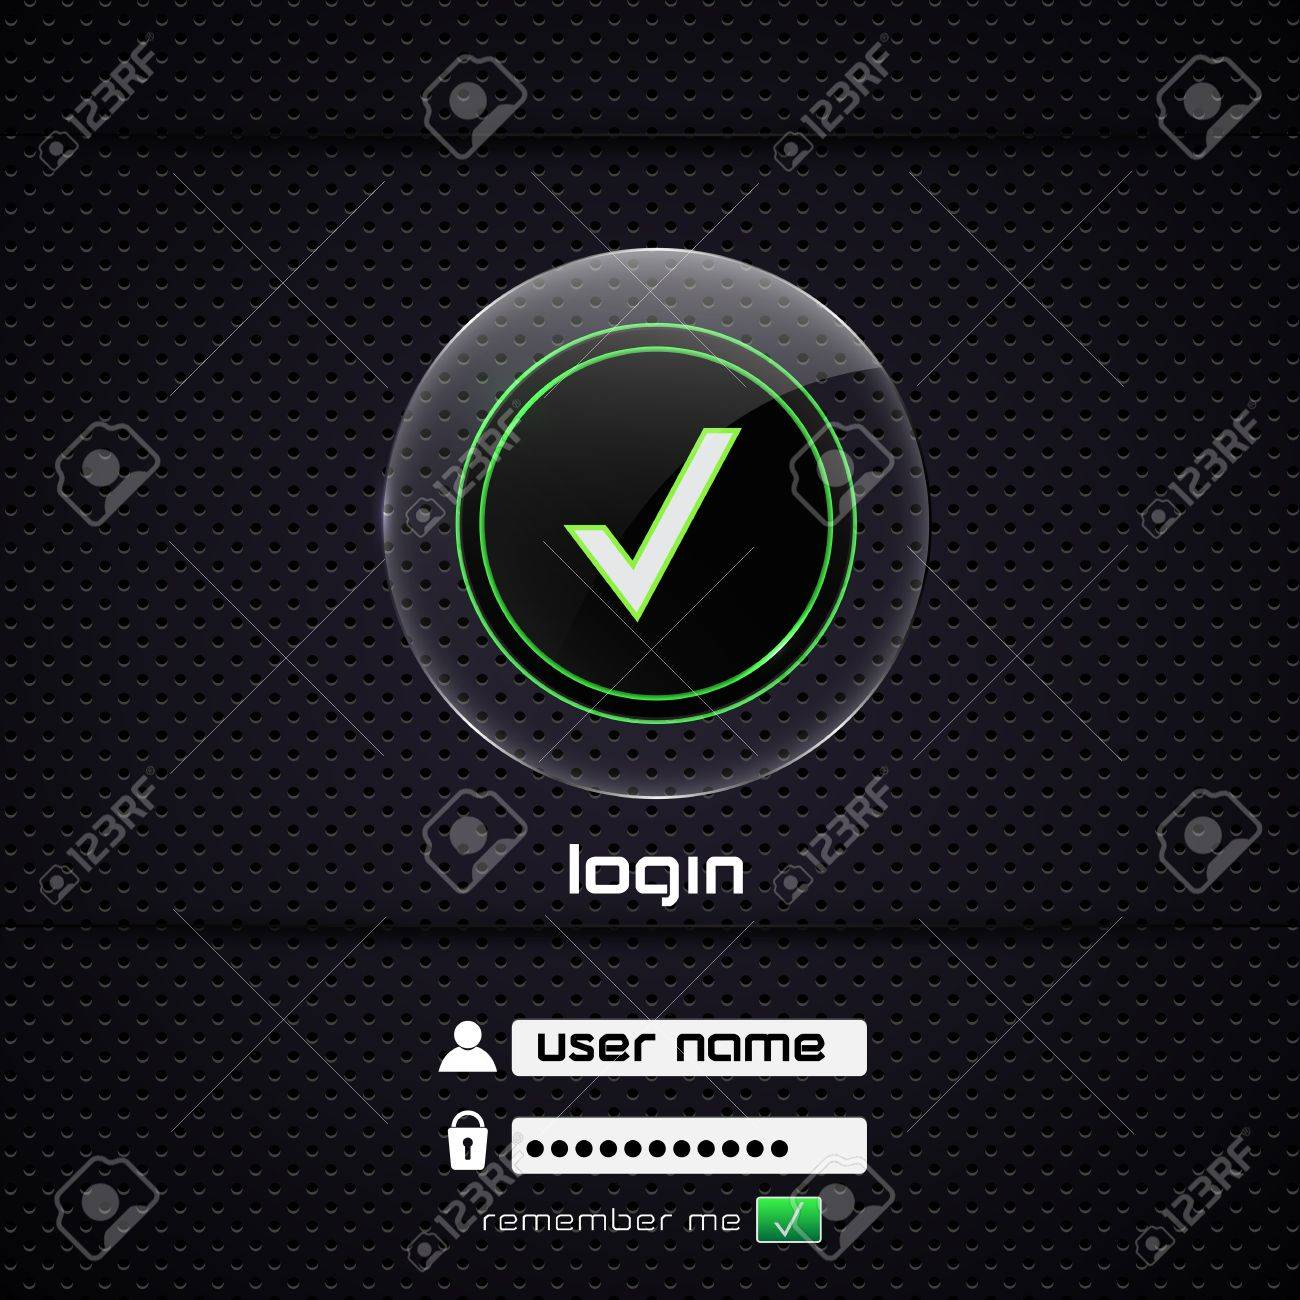 Illustration of a login page Stock Vector - 13748464